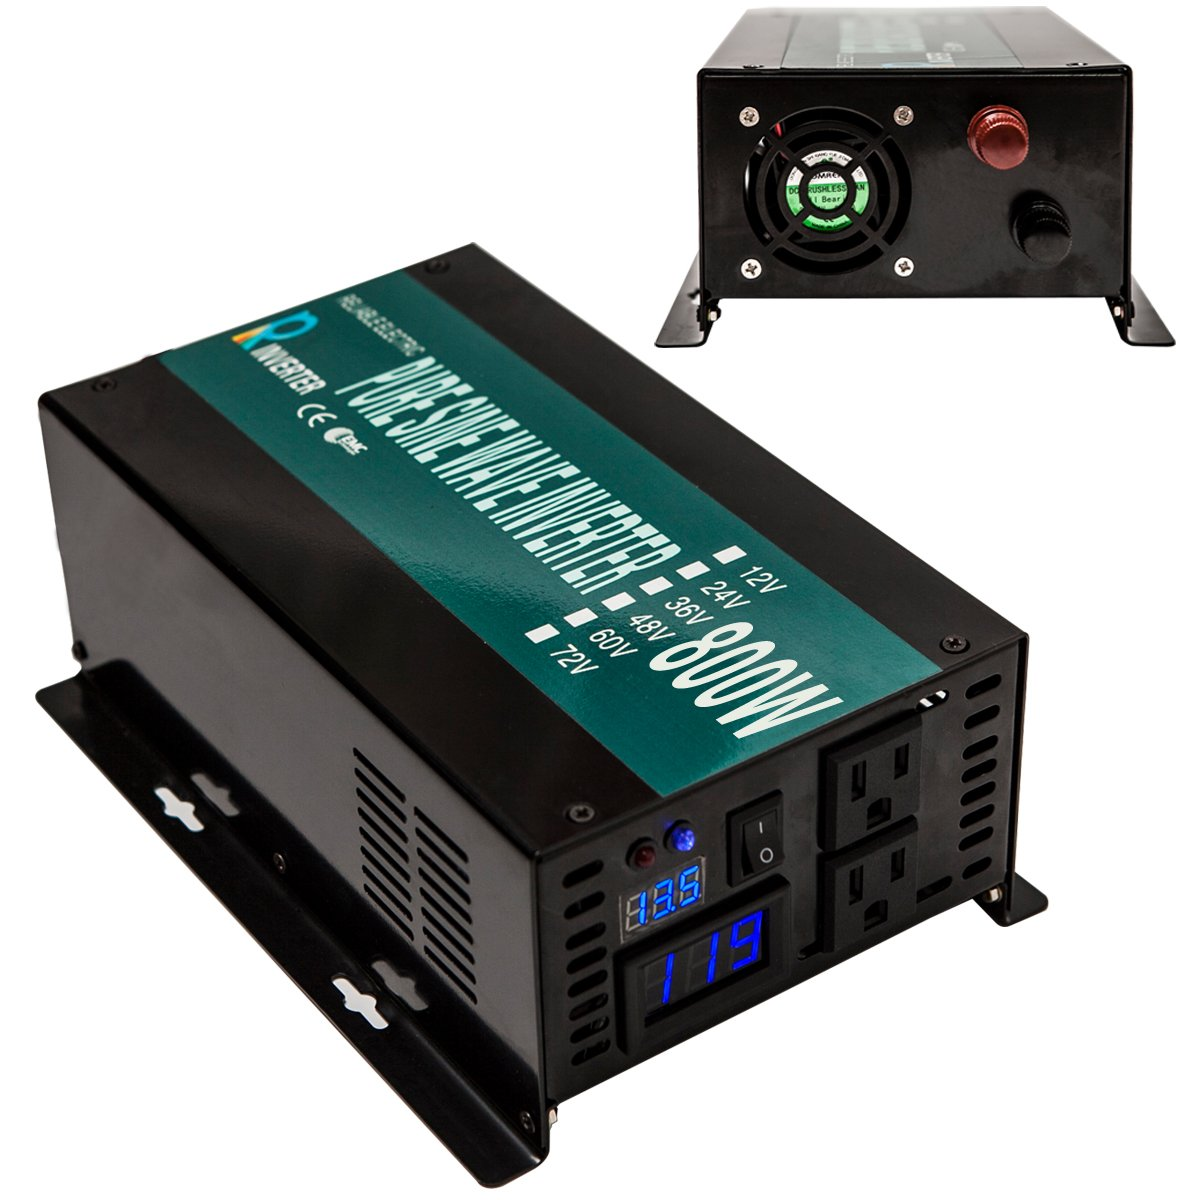 WZRELB Reliable Power Inverter 800w 1600w Peak Pure Sine Wave Inverter 12v 120v 60hz LED Display by WZRELB (Image #3)